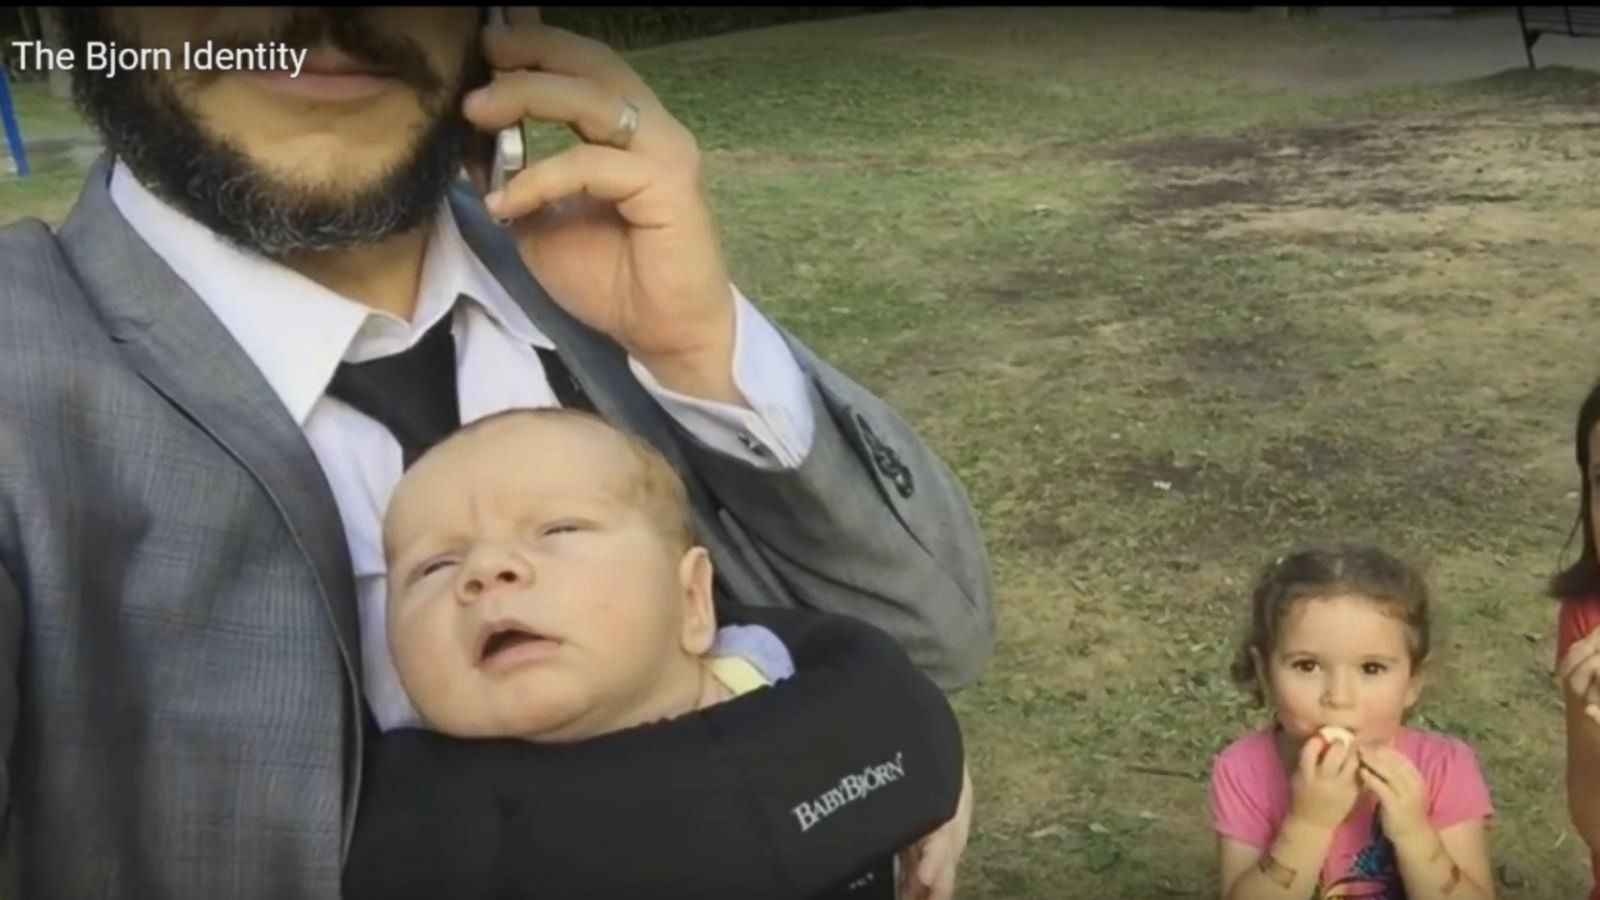 VIDEO: Dad Spoofs Jason Bourne With Hilarious (Baby) Bjorn Identity Video